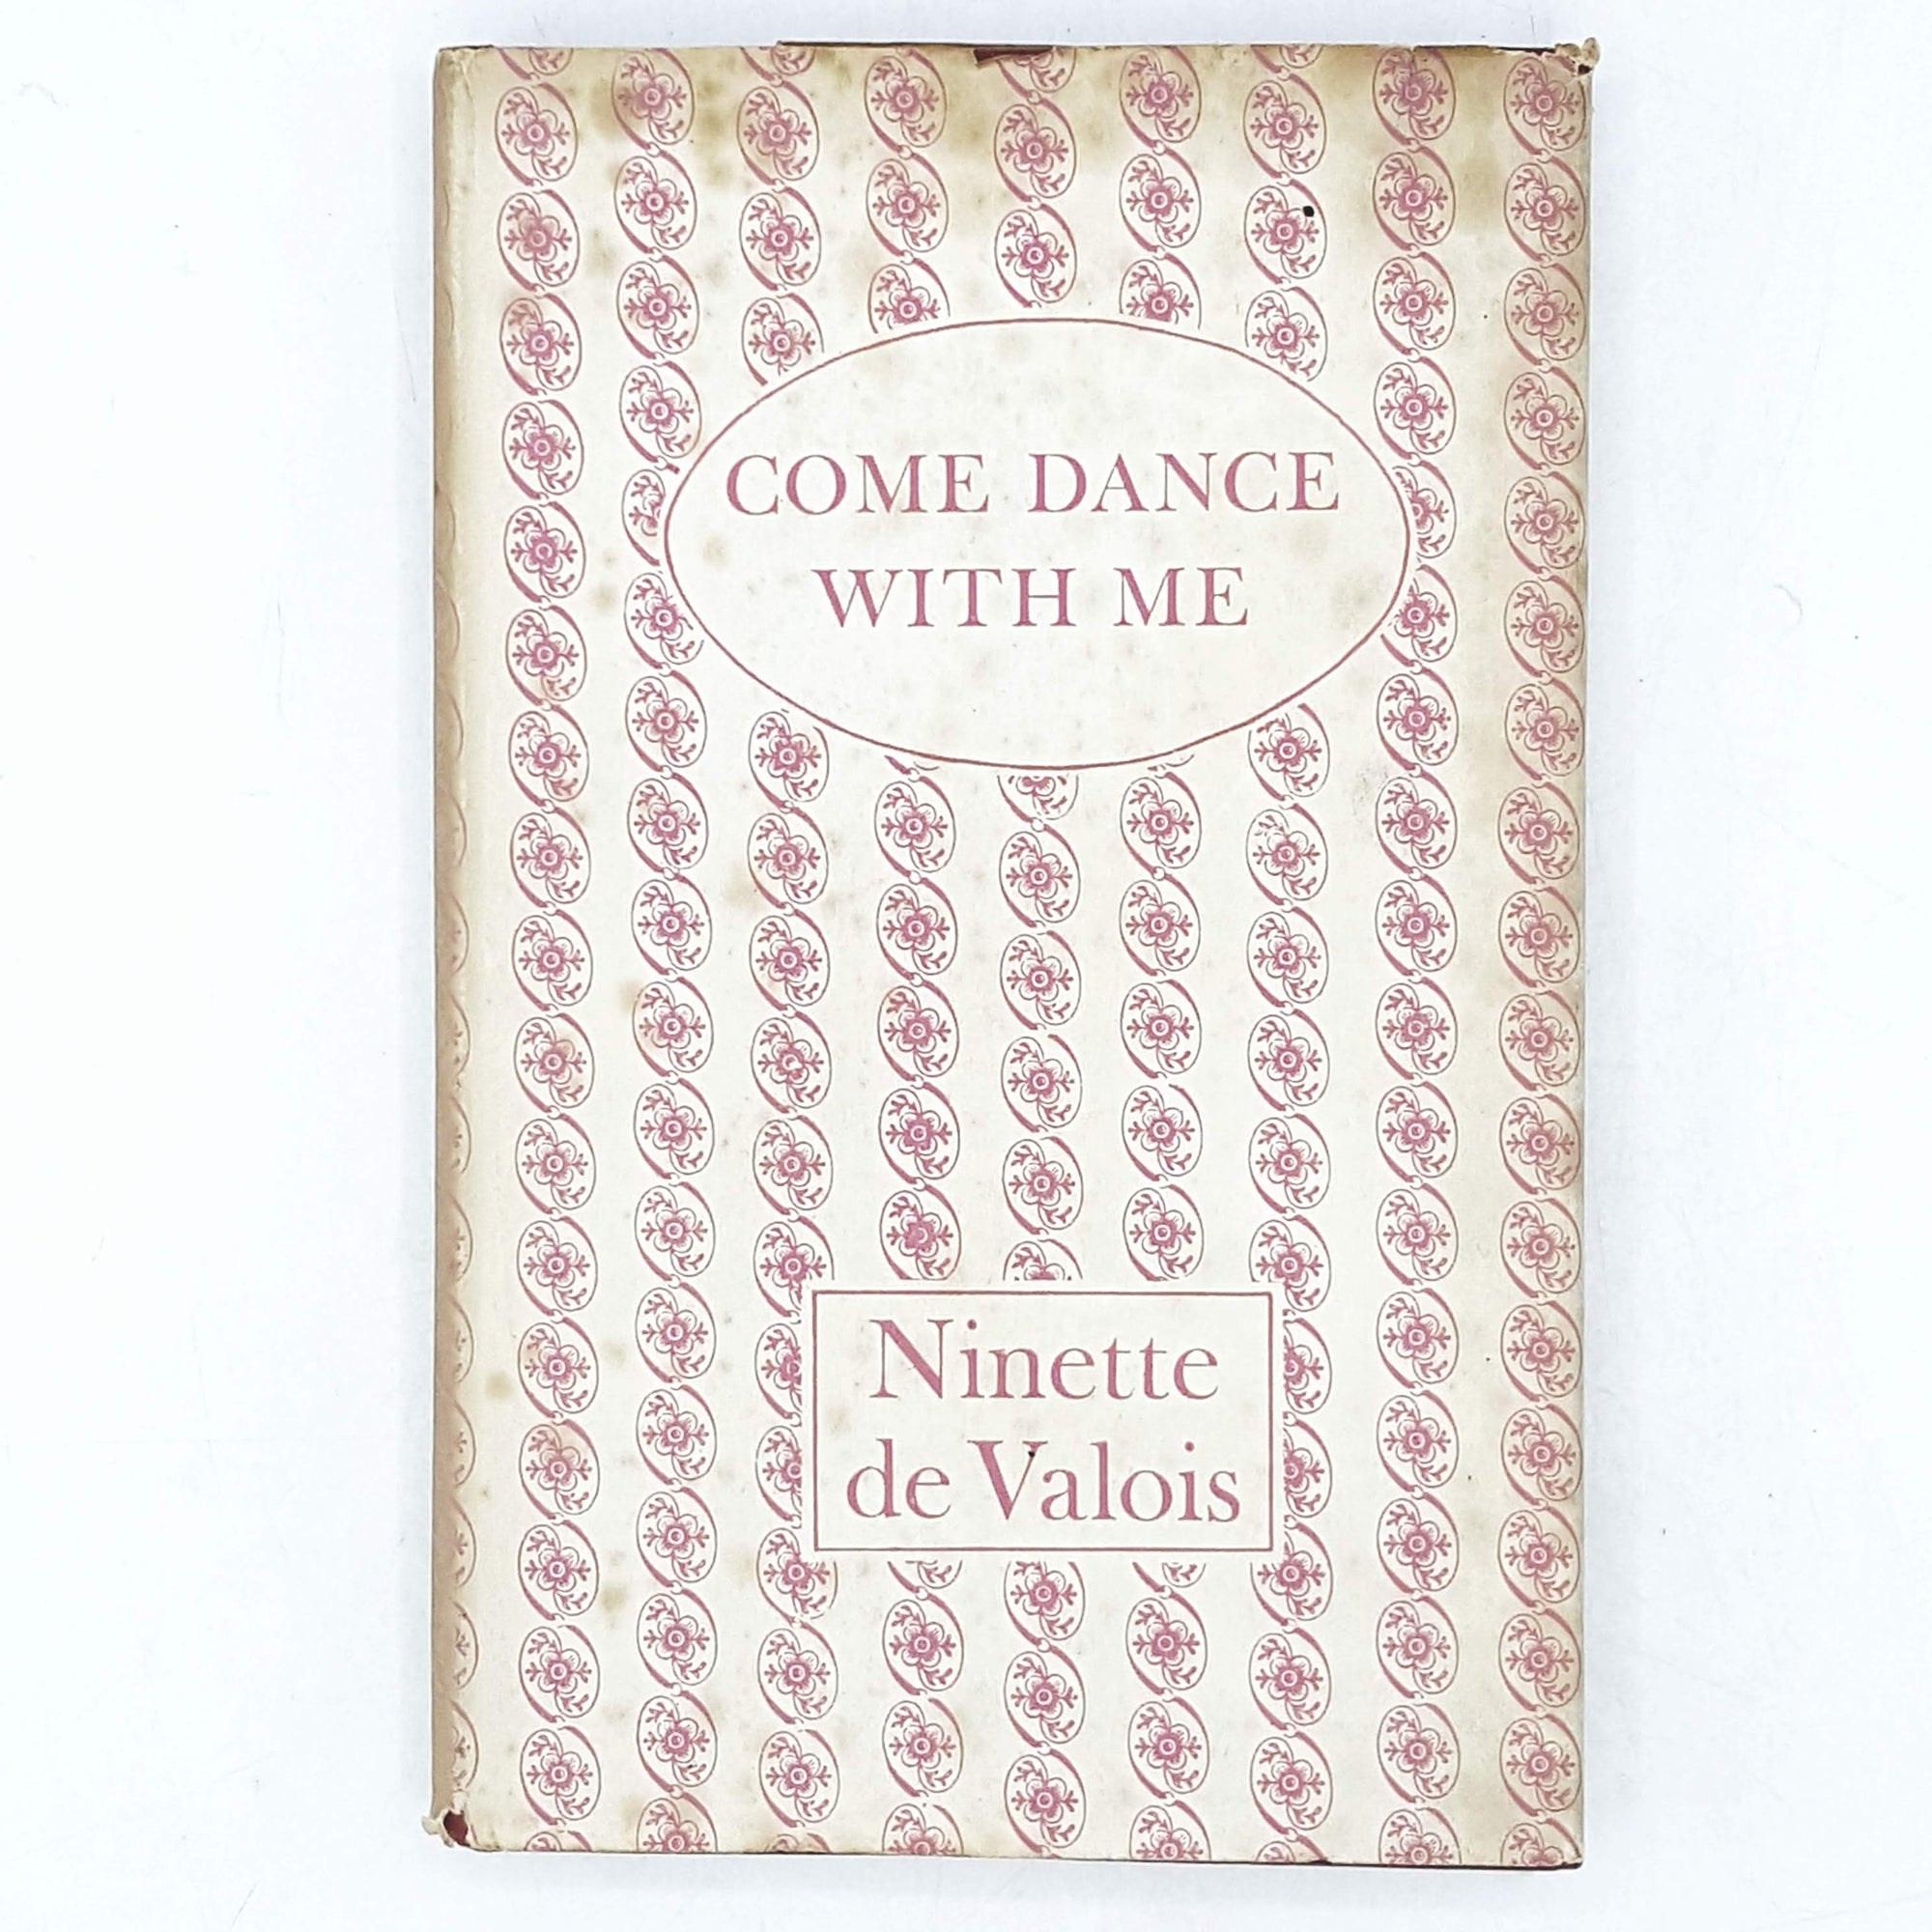 Come Dance with Me by Ninette de Valois 1959